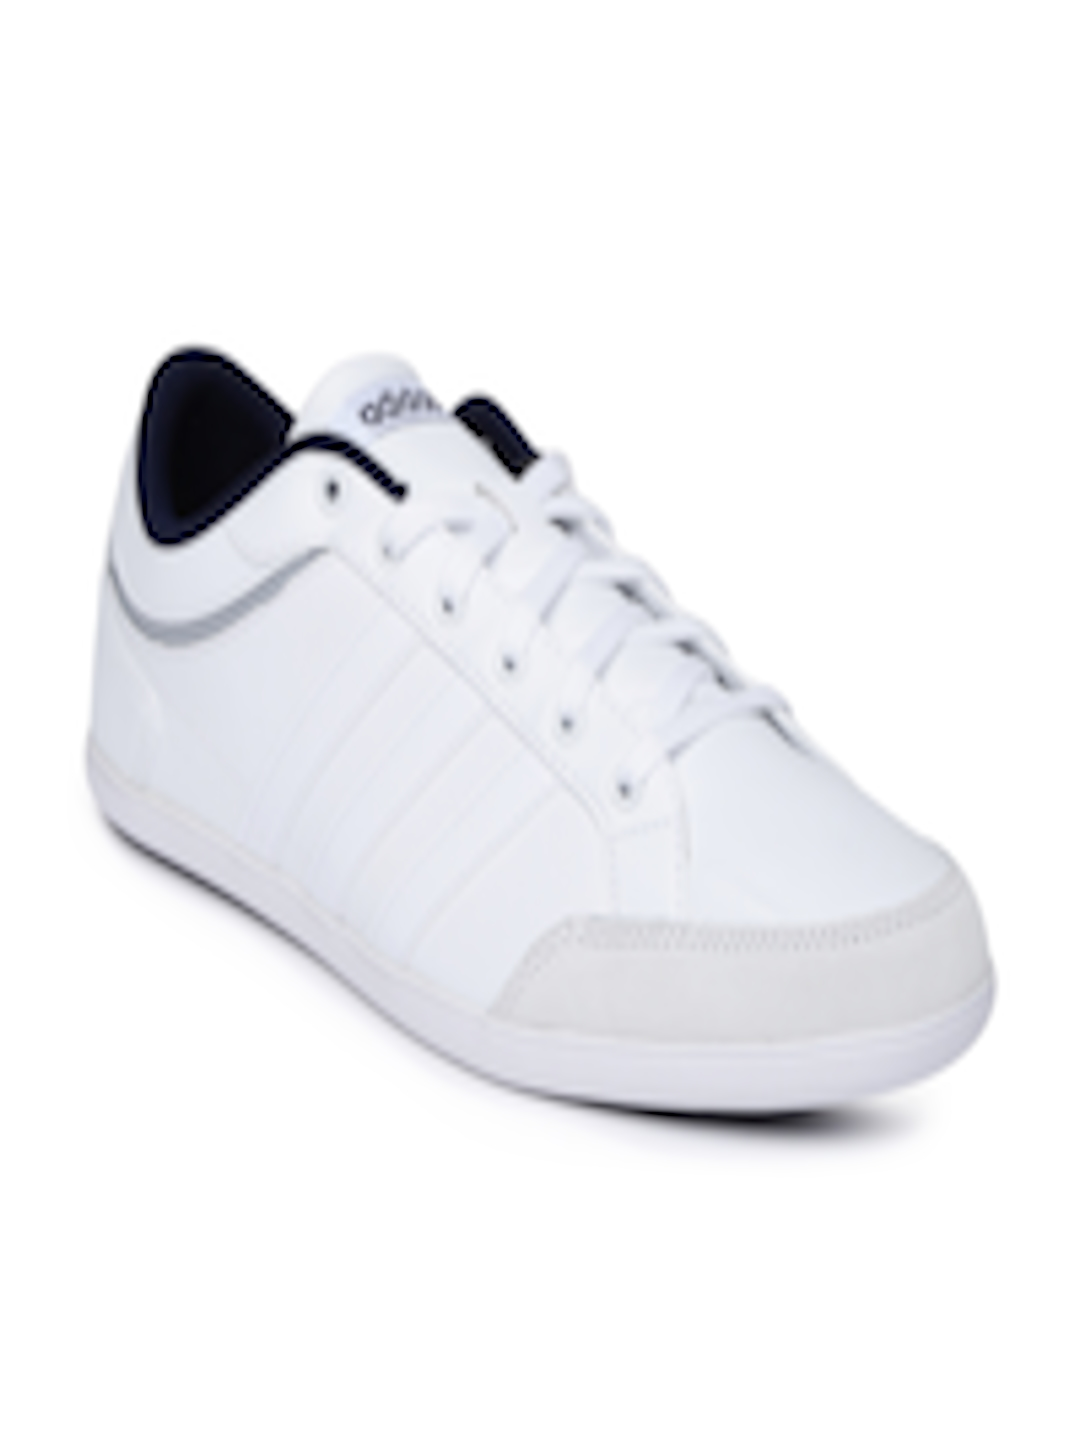 Buy Unwind Adidas For White Men Shoes Sneakers Neo Casual Leather rAZqrnFwW